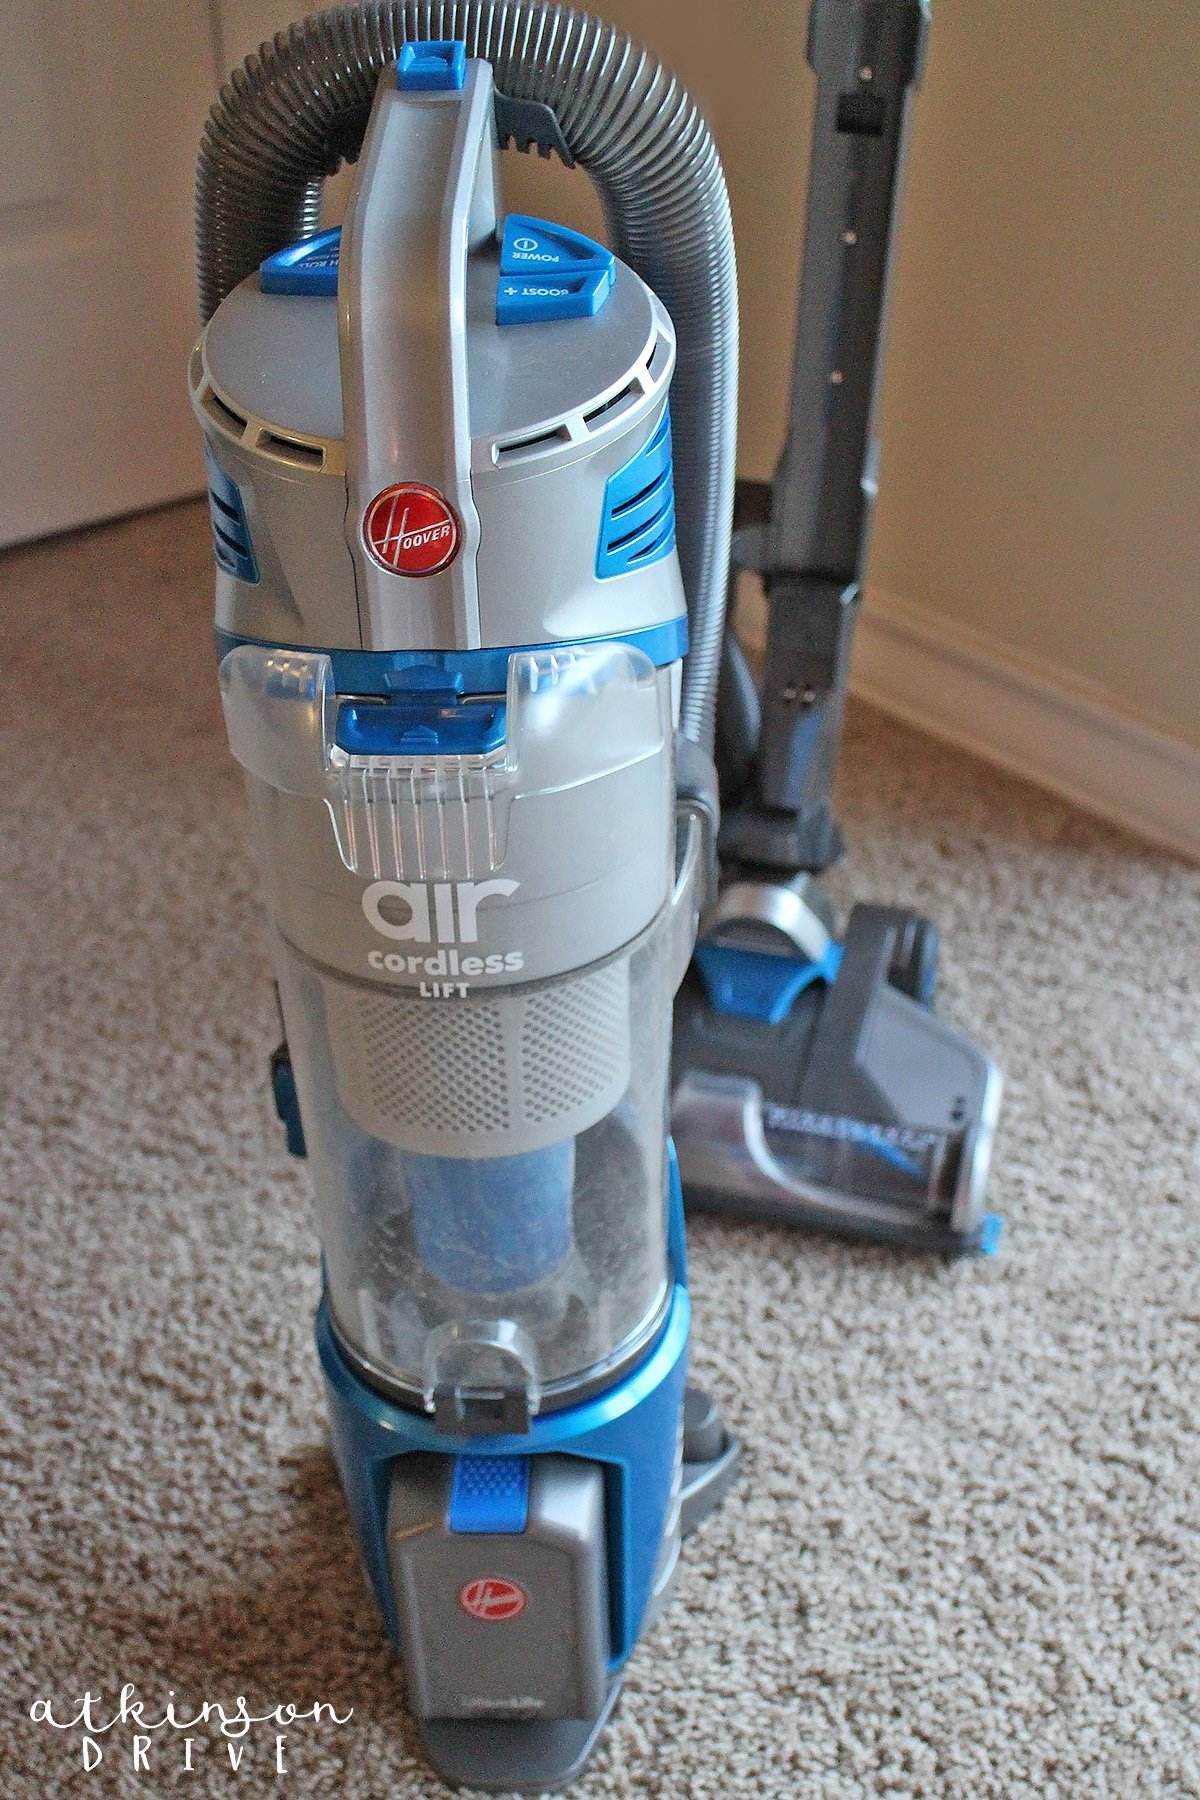 No Cord, No Bull: How I Learned to Love Vacuuming